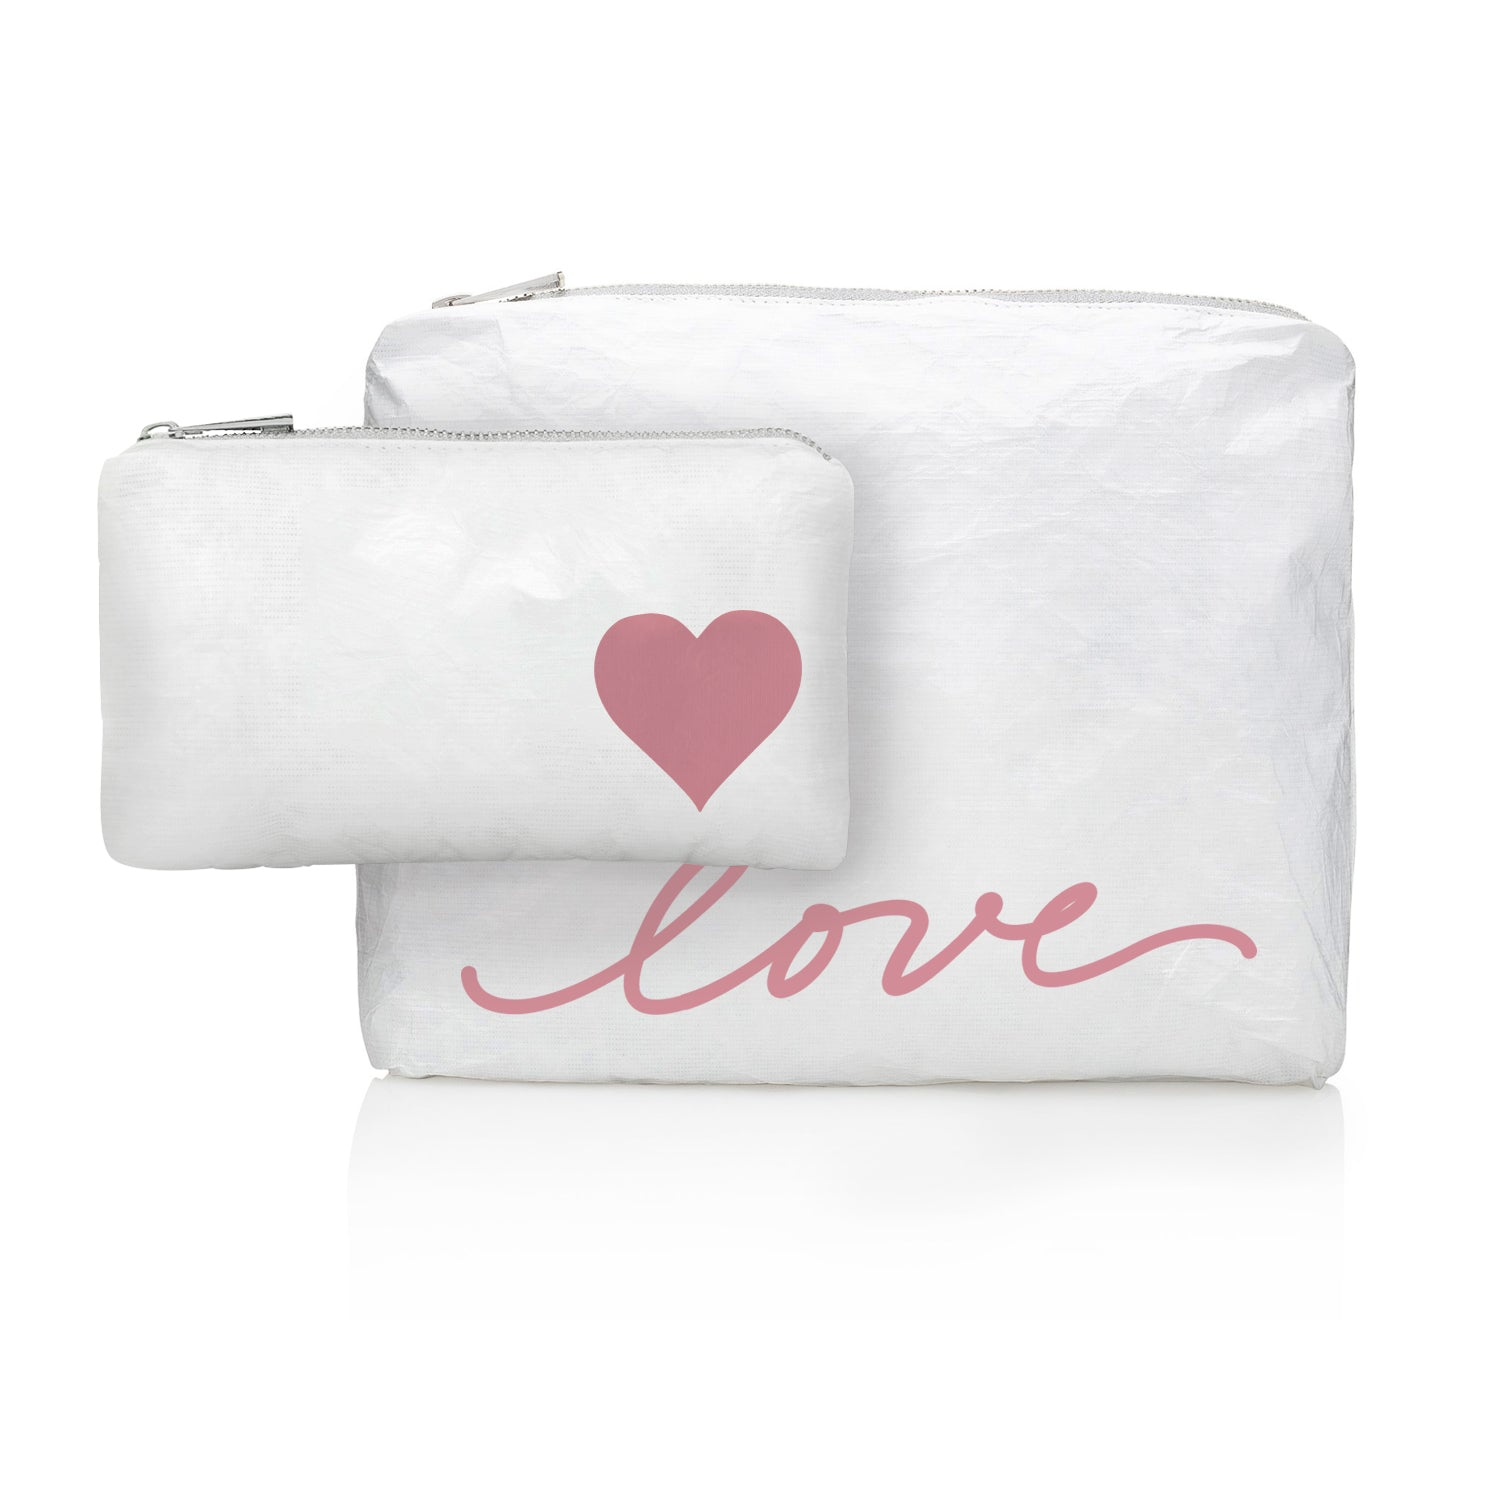 "Makeup Pouch - Travel Pack - Beach Bag - Set of Two - Shimmer White with Pink Script ""love"""